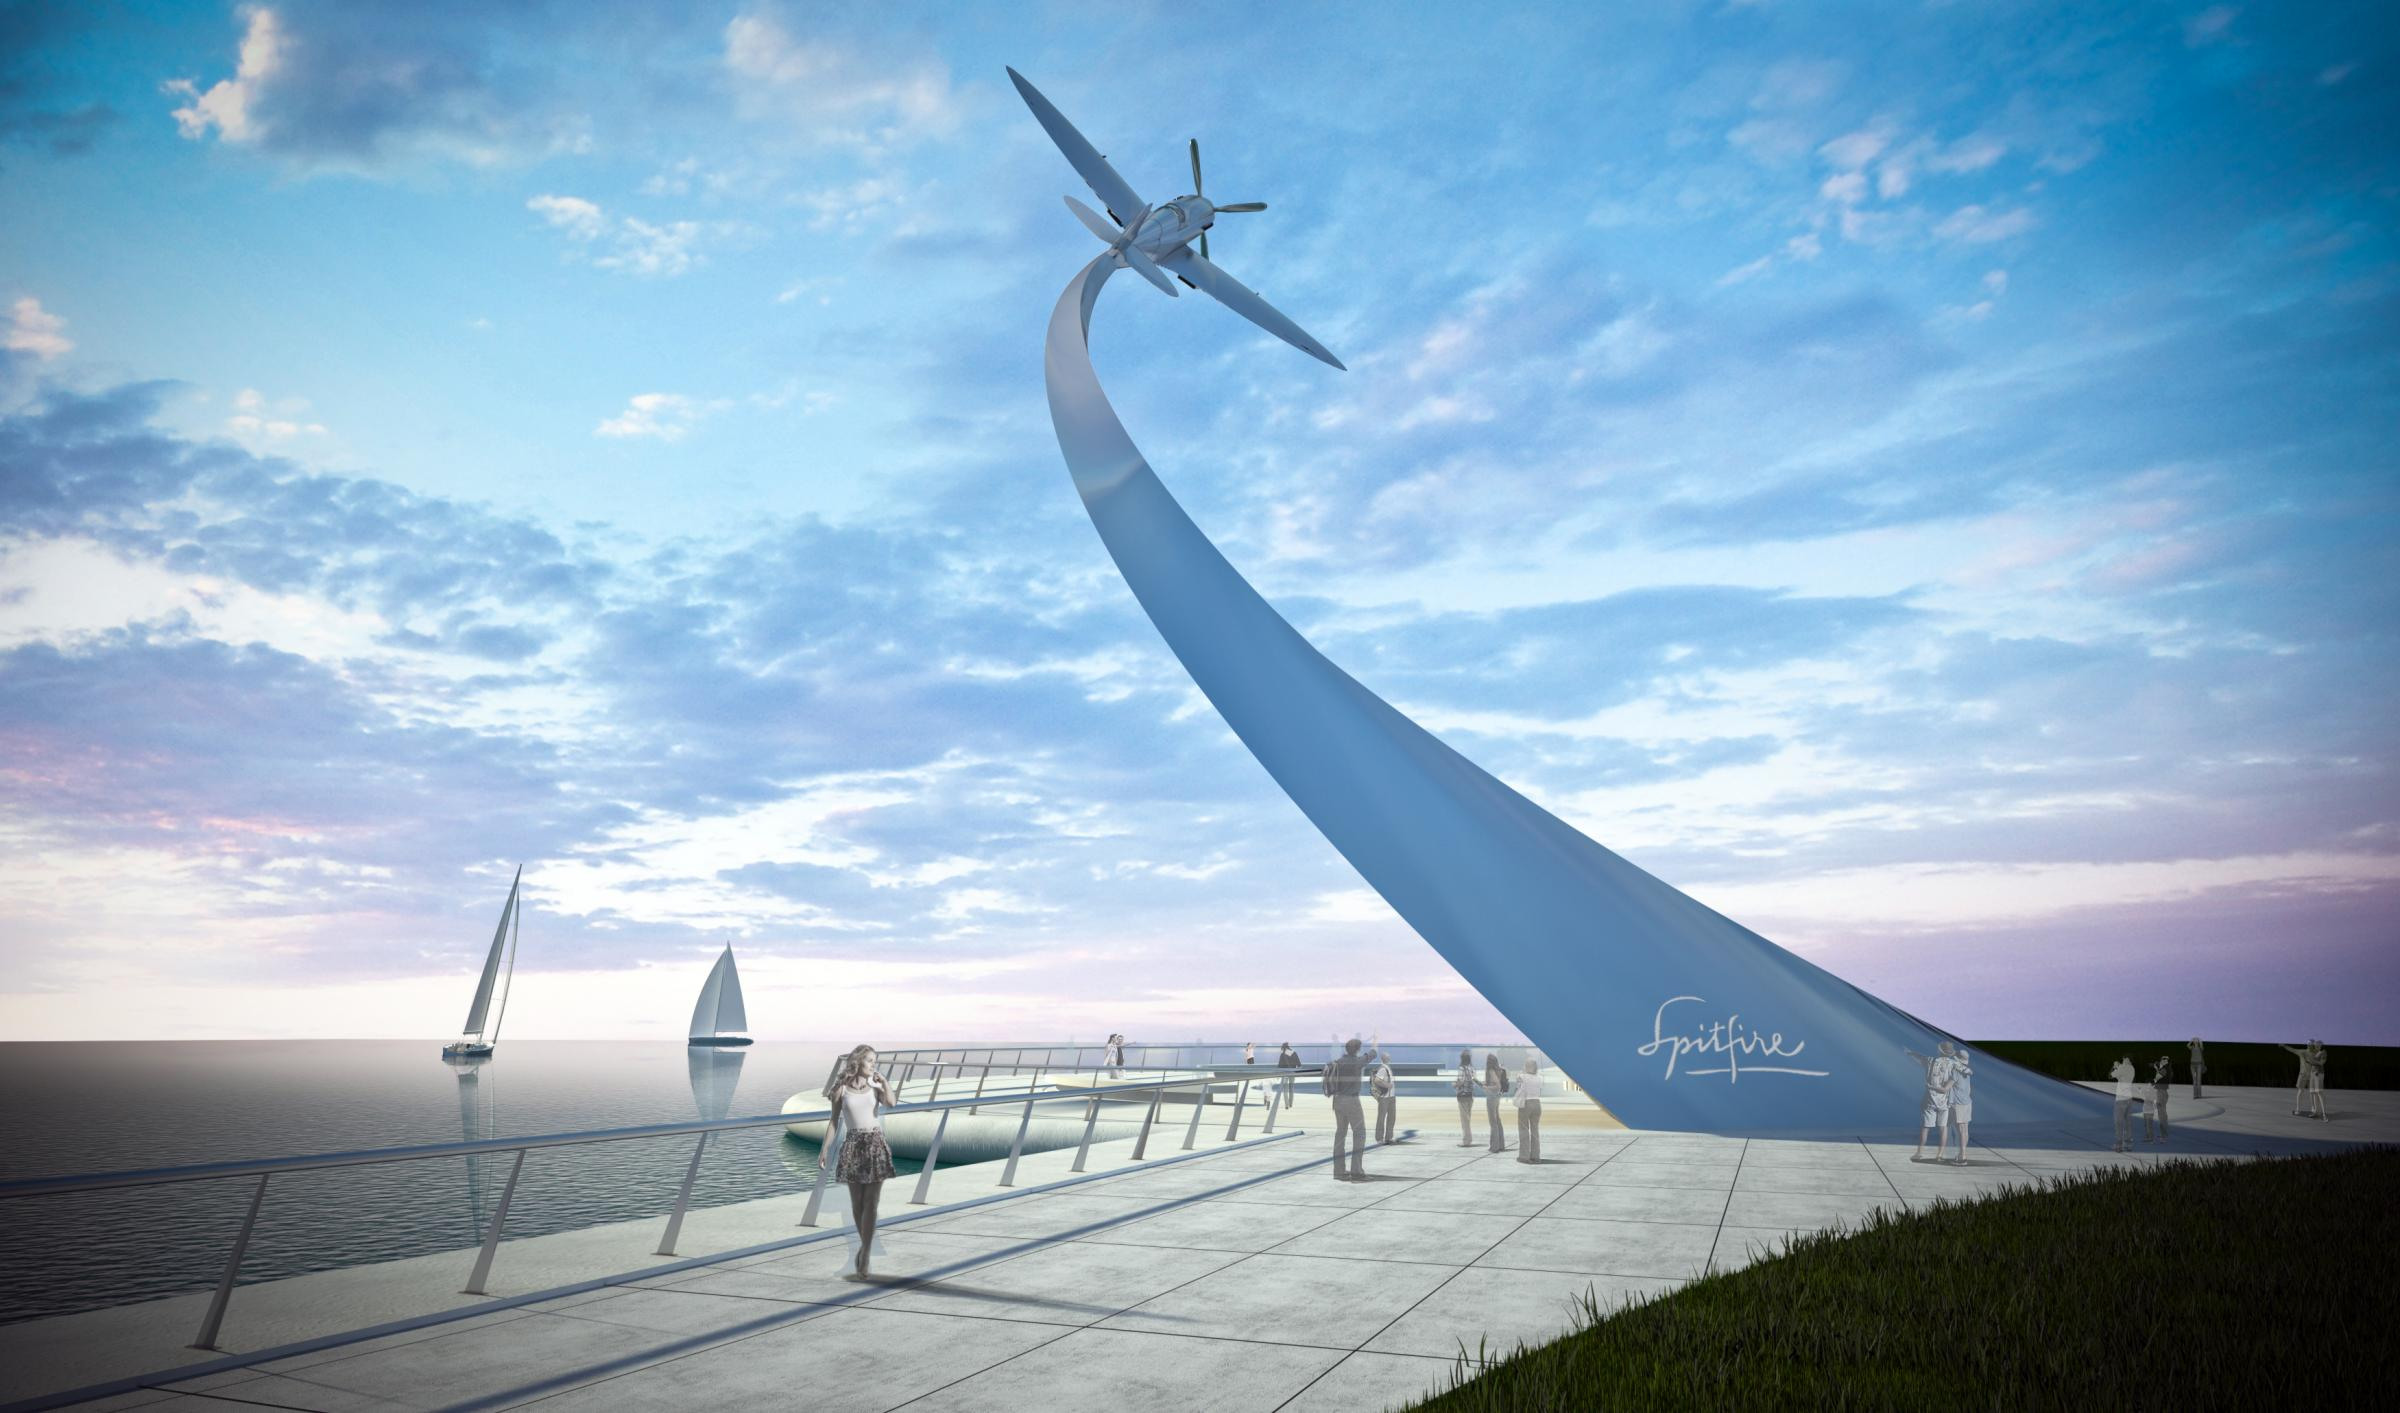 An artist's impression of what the monument could look like